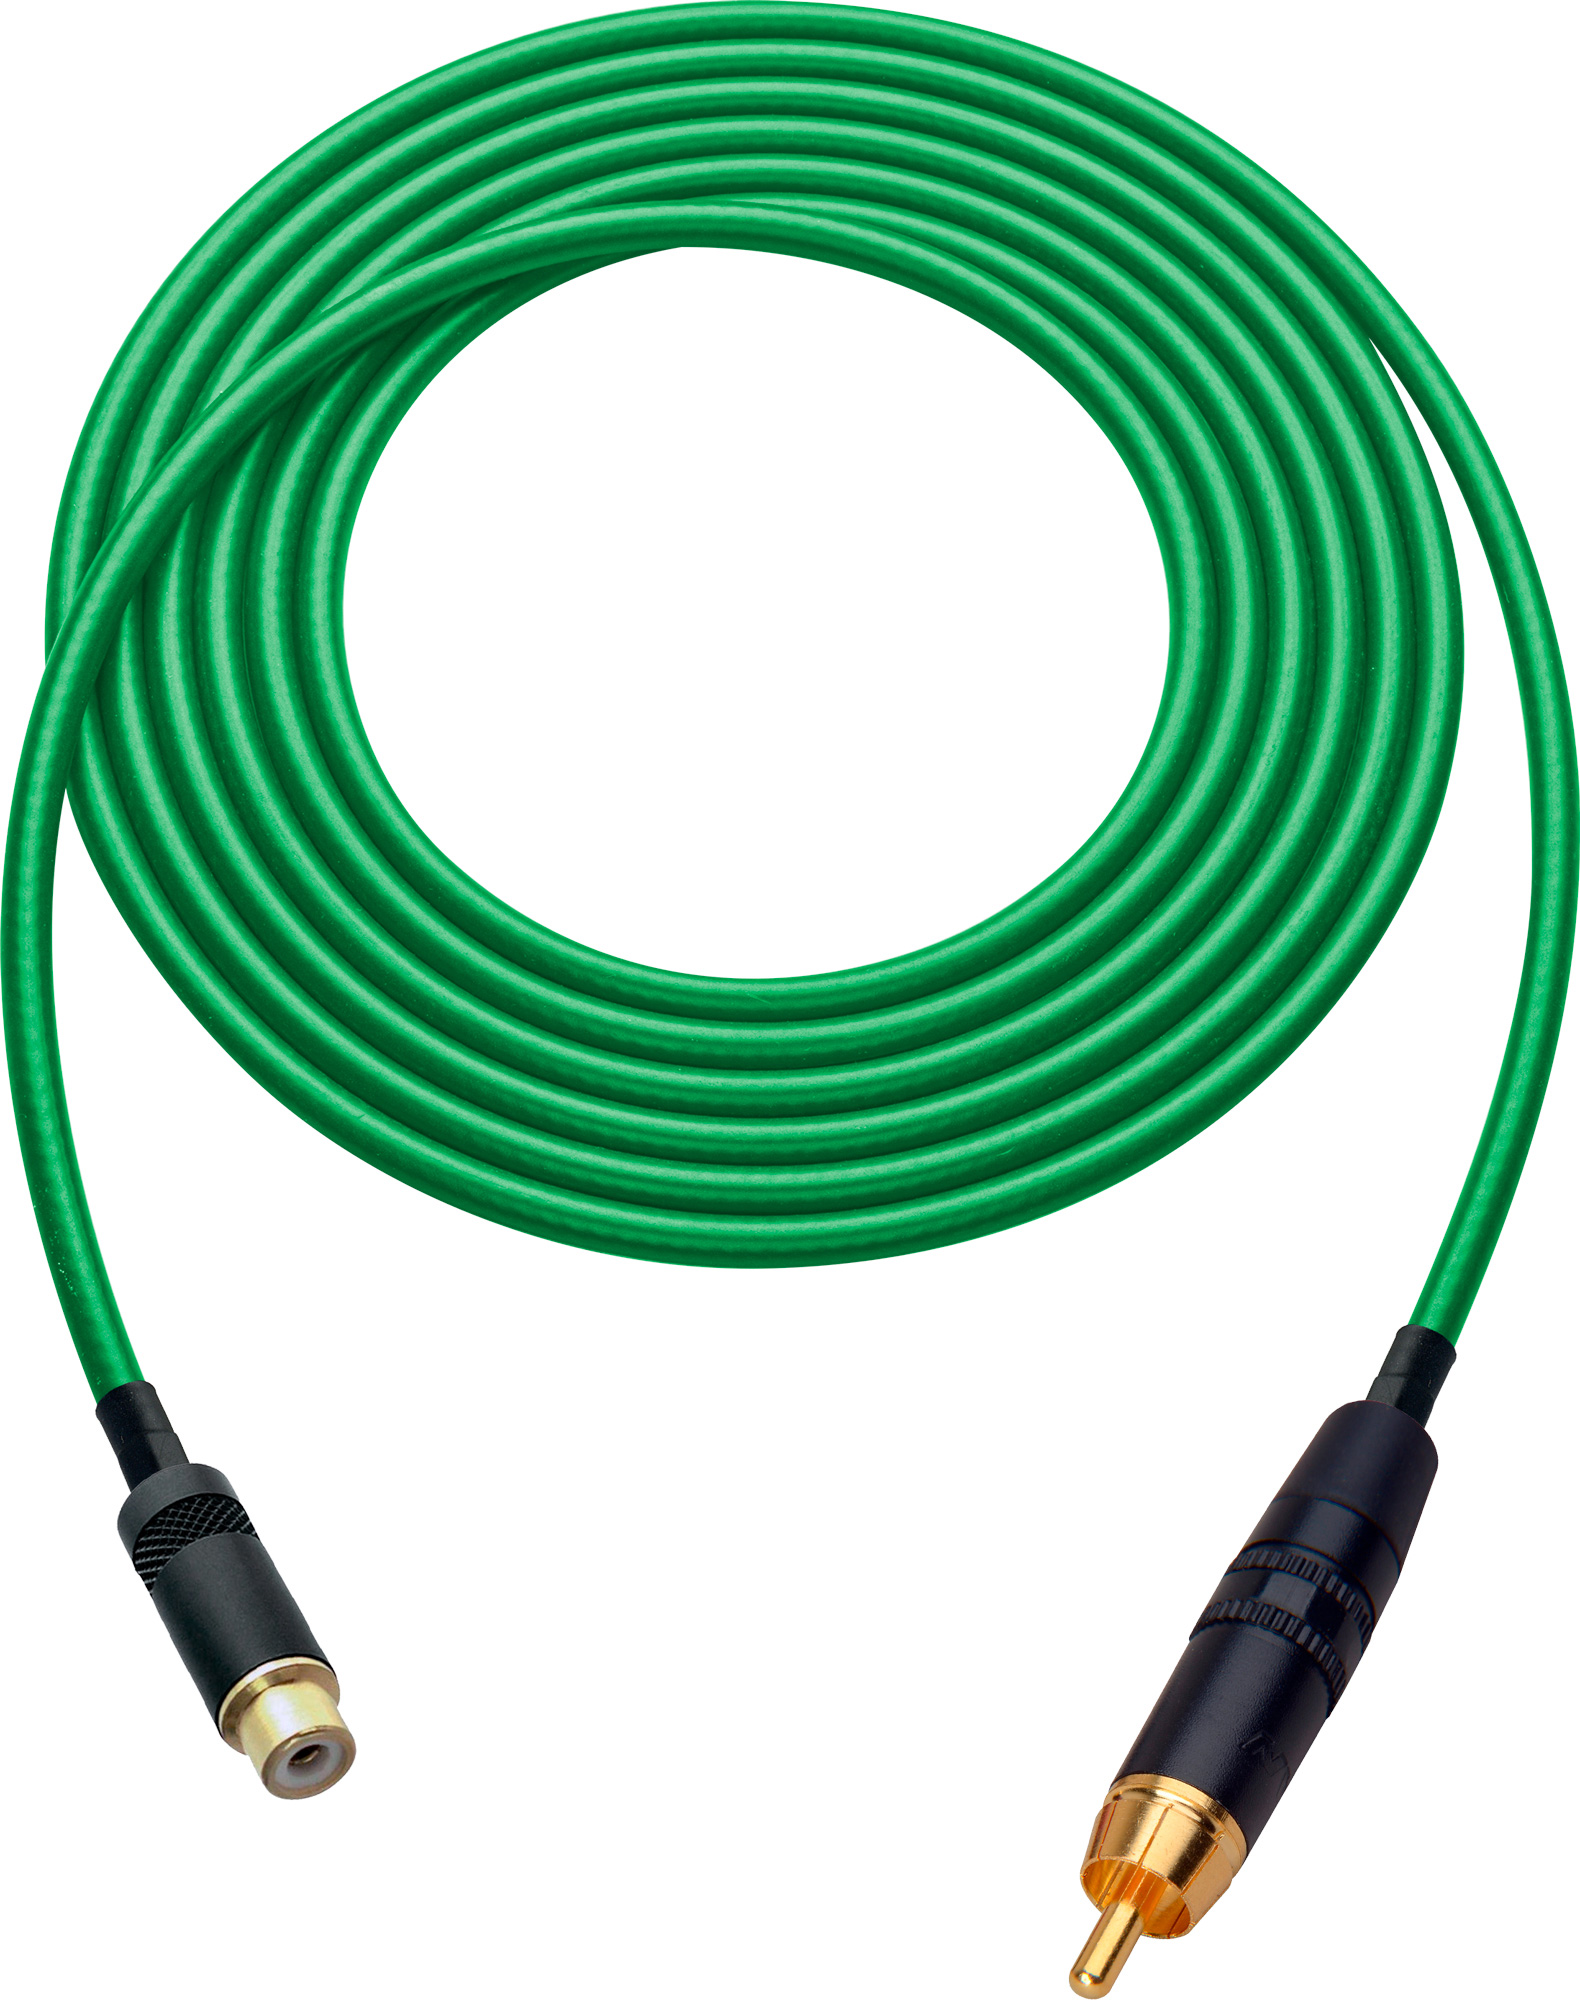 Laird HDAV-EXT-15-GN Belden 1505A RCA M to F Extension Cable For Audio or HD Video - 15 Foot Green